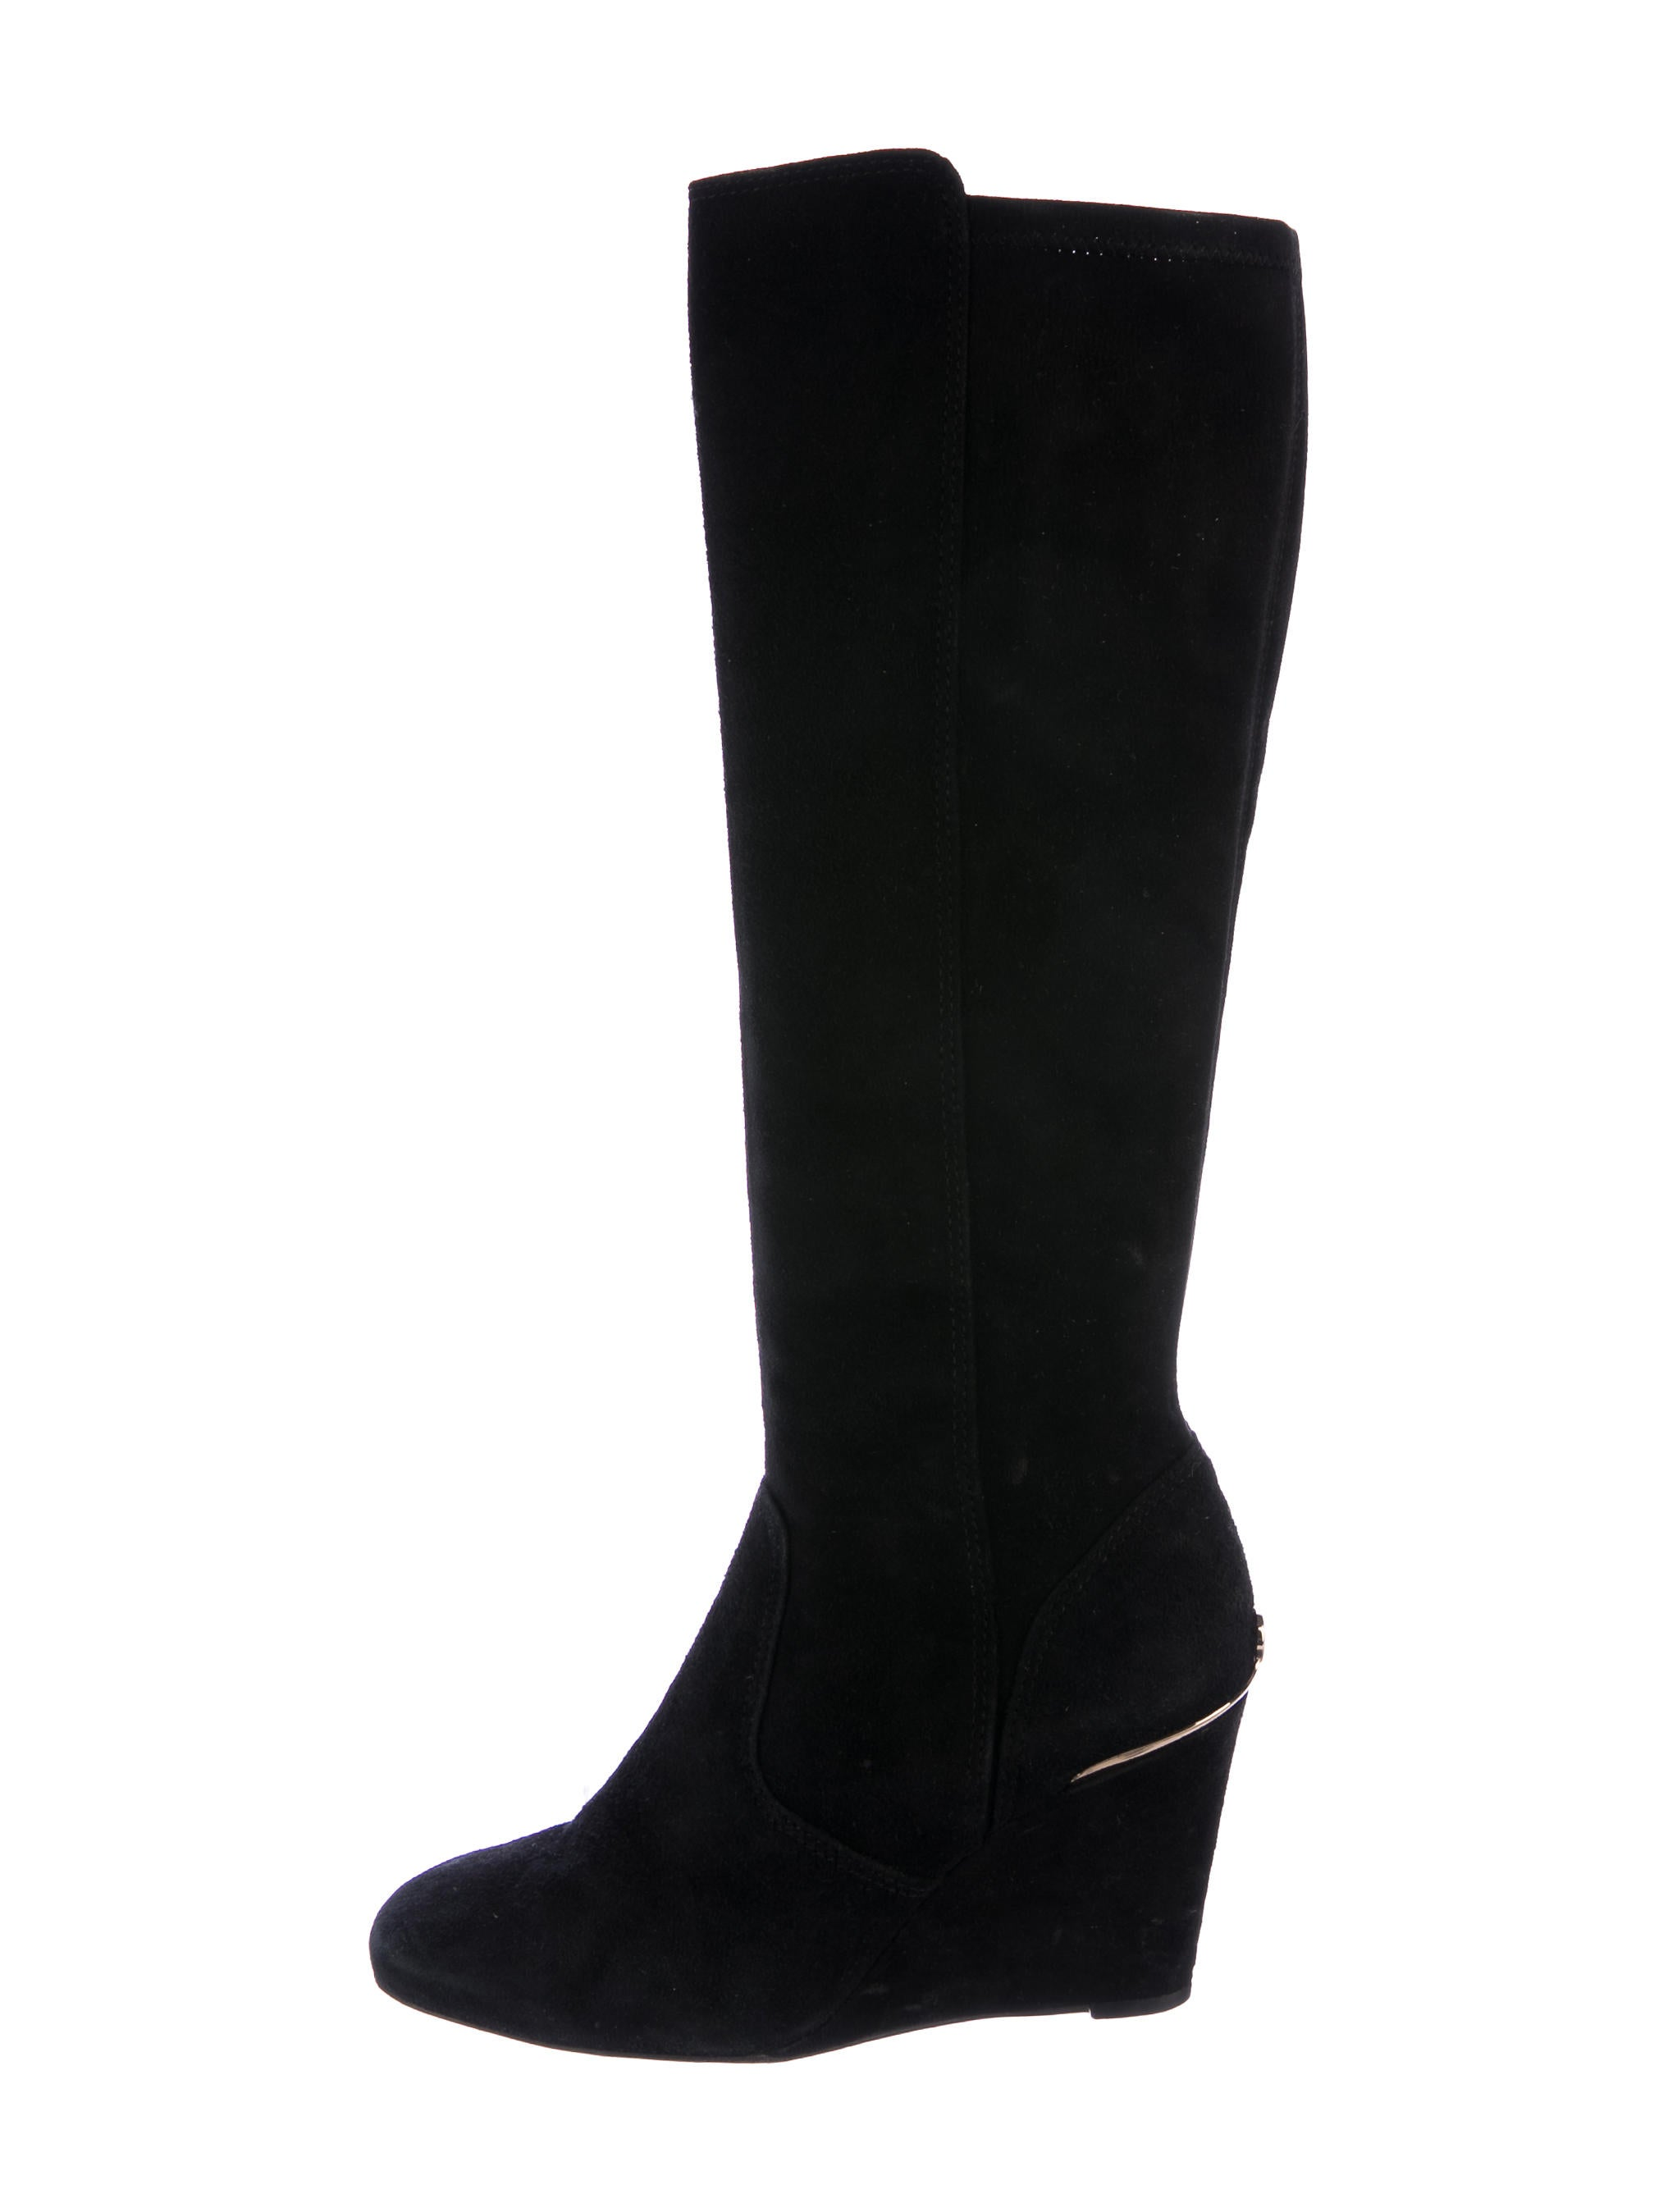 burch suede knee high boots shoes wto106667 the